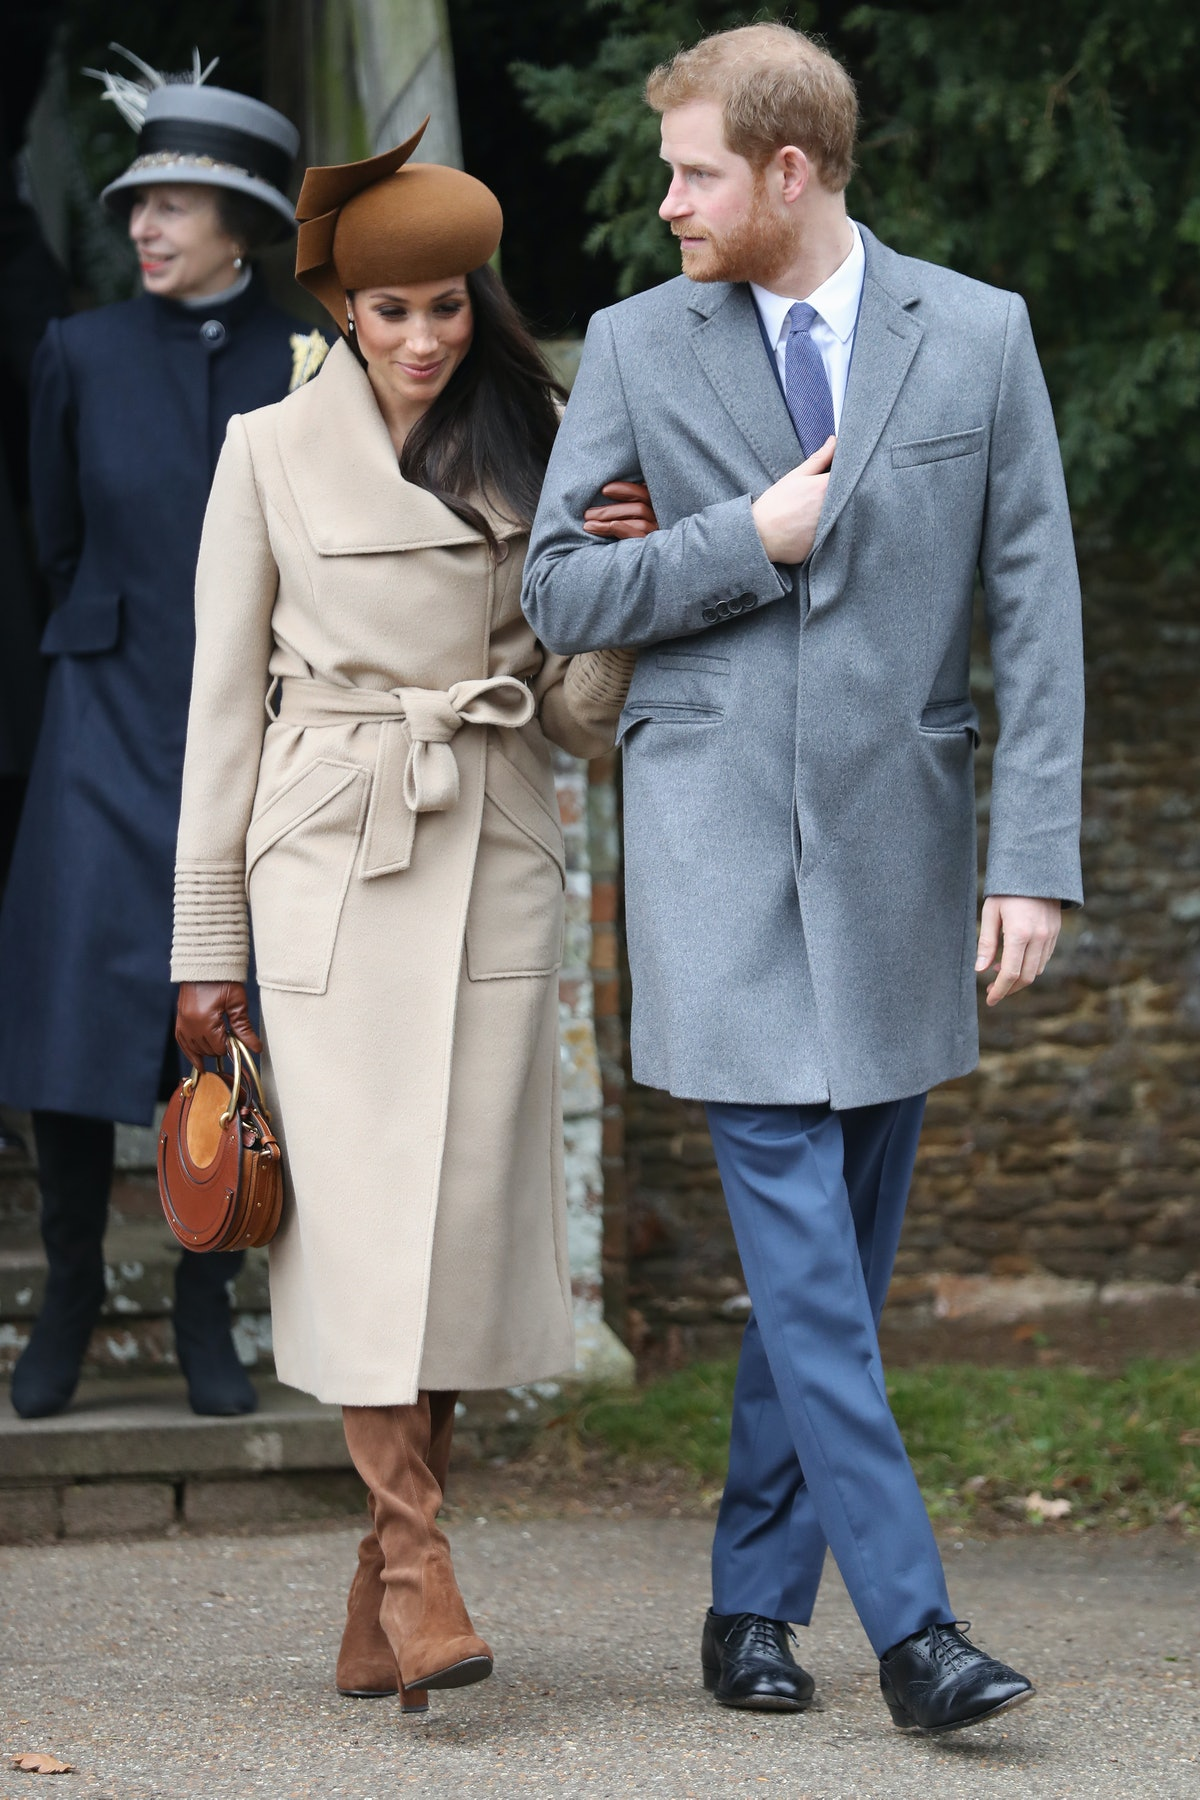 Meghan Markle wore a statement hat and knee-high bots from Stuart Weitzman in December 2018.